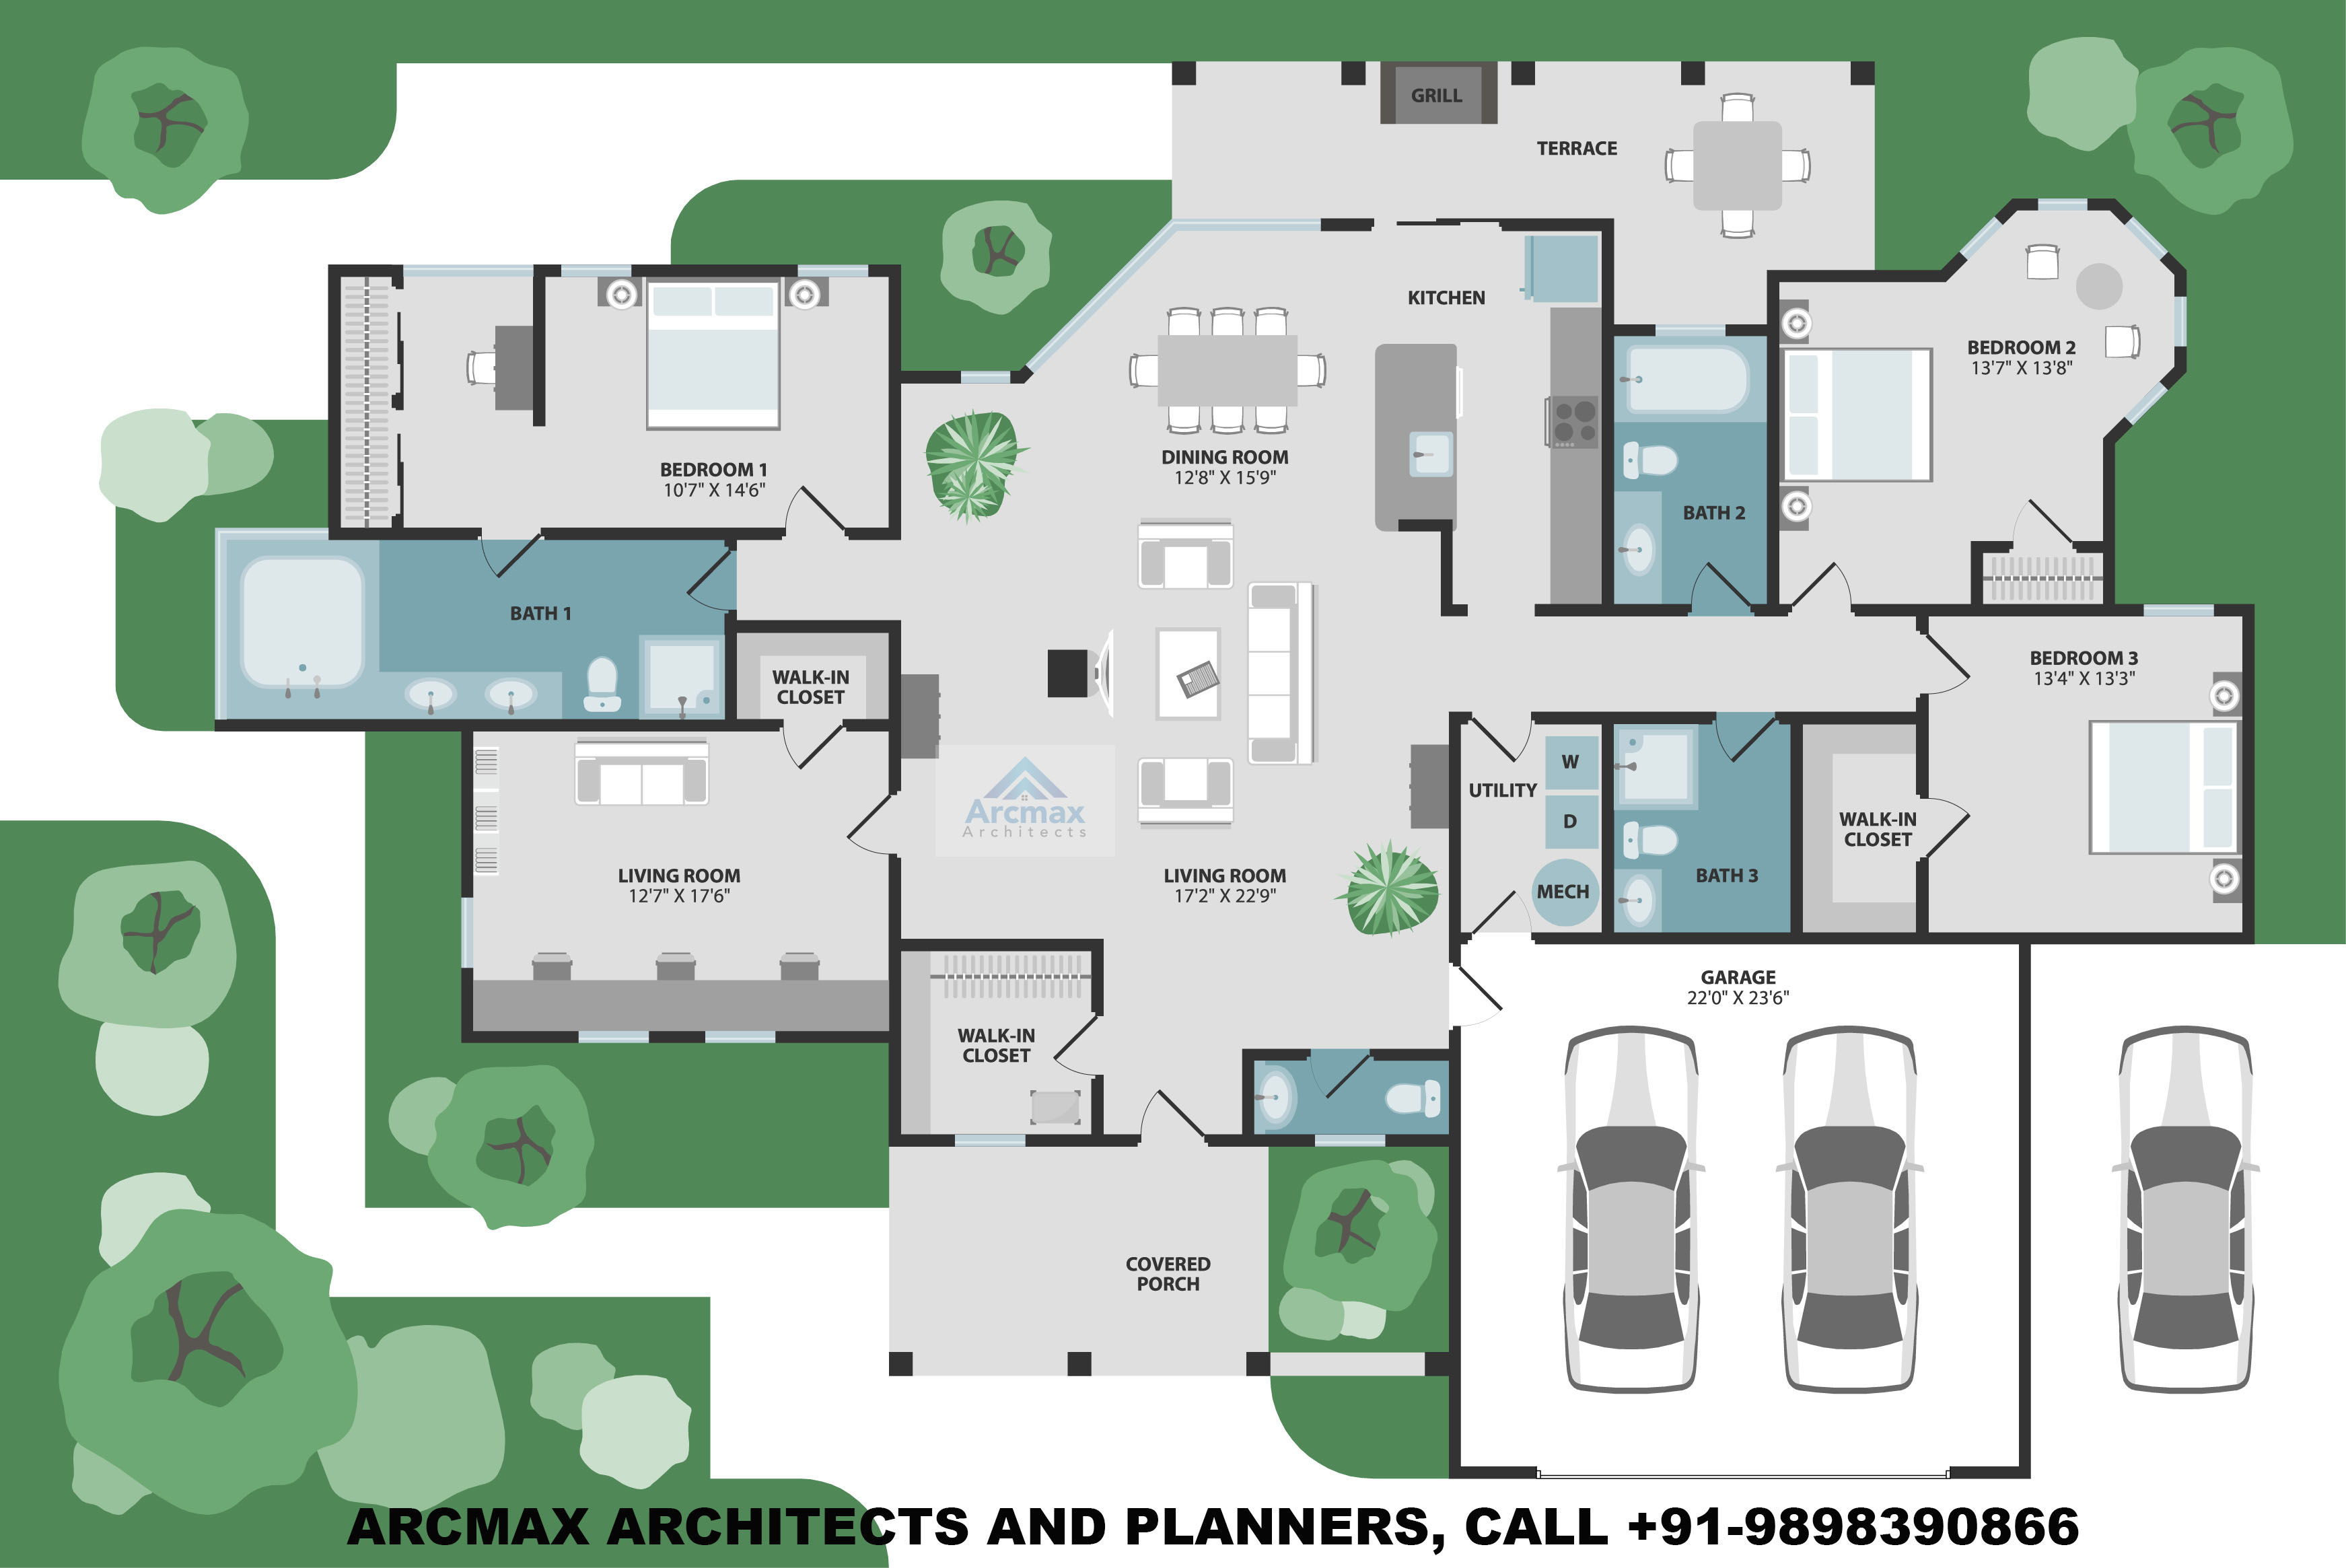 4bhk luxury villa design floor plans type 1 unit custom design layout floor plans anywhere